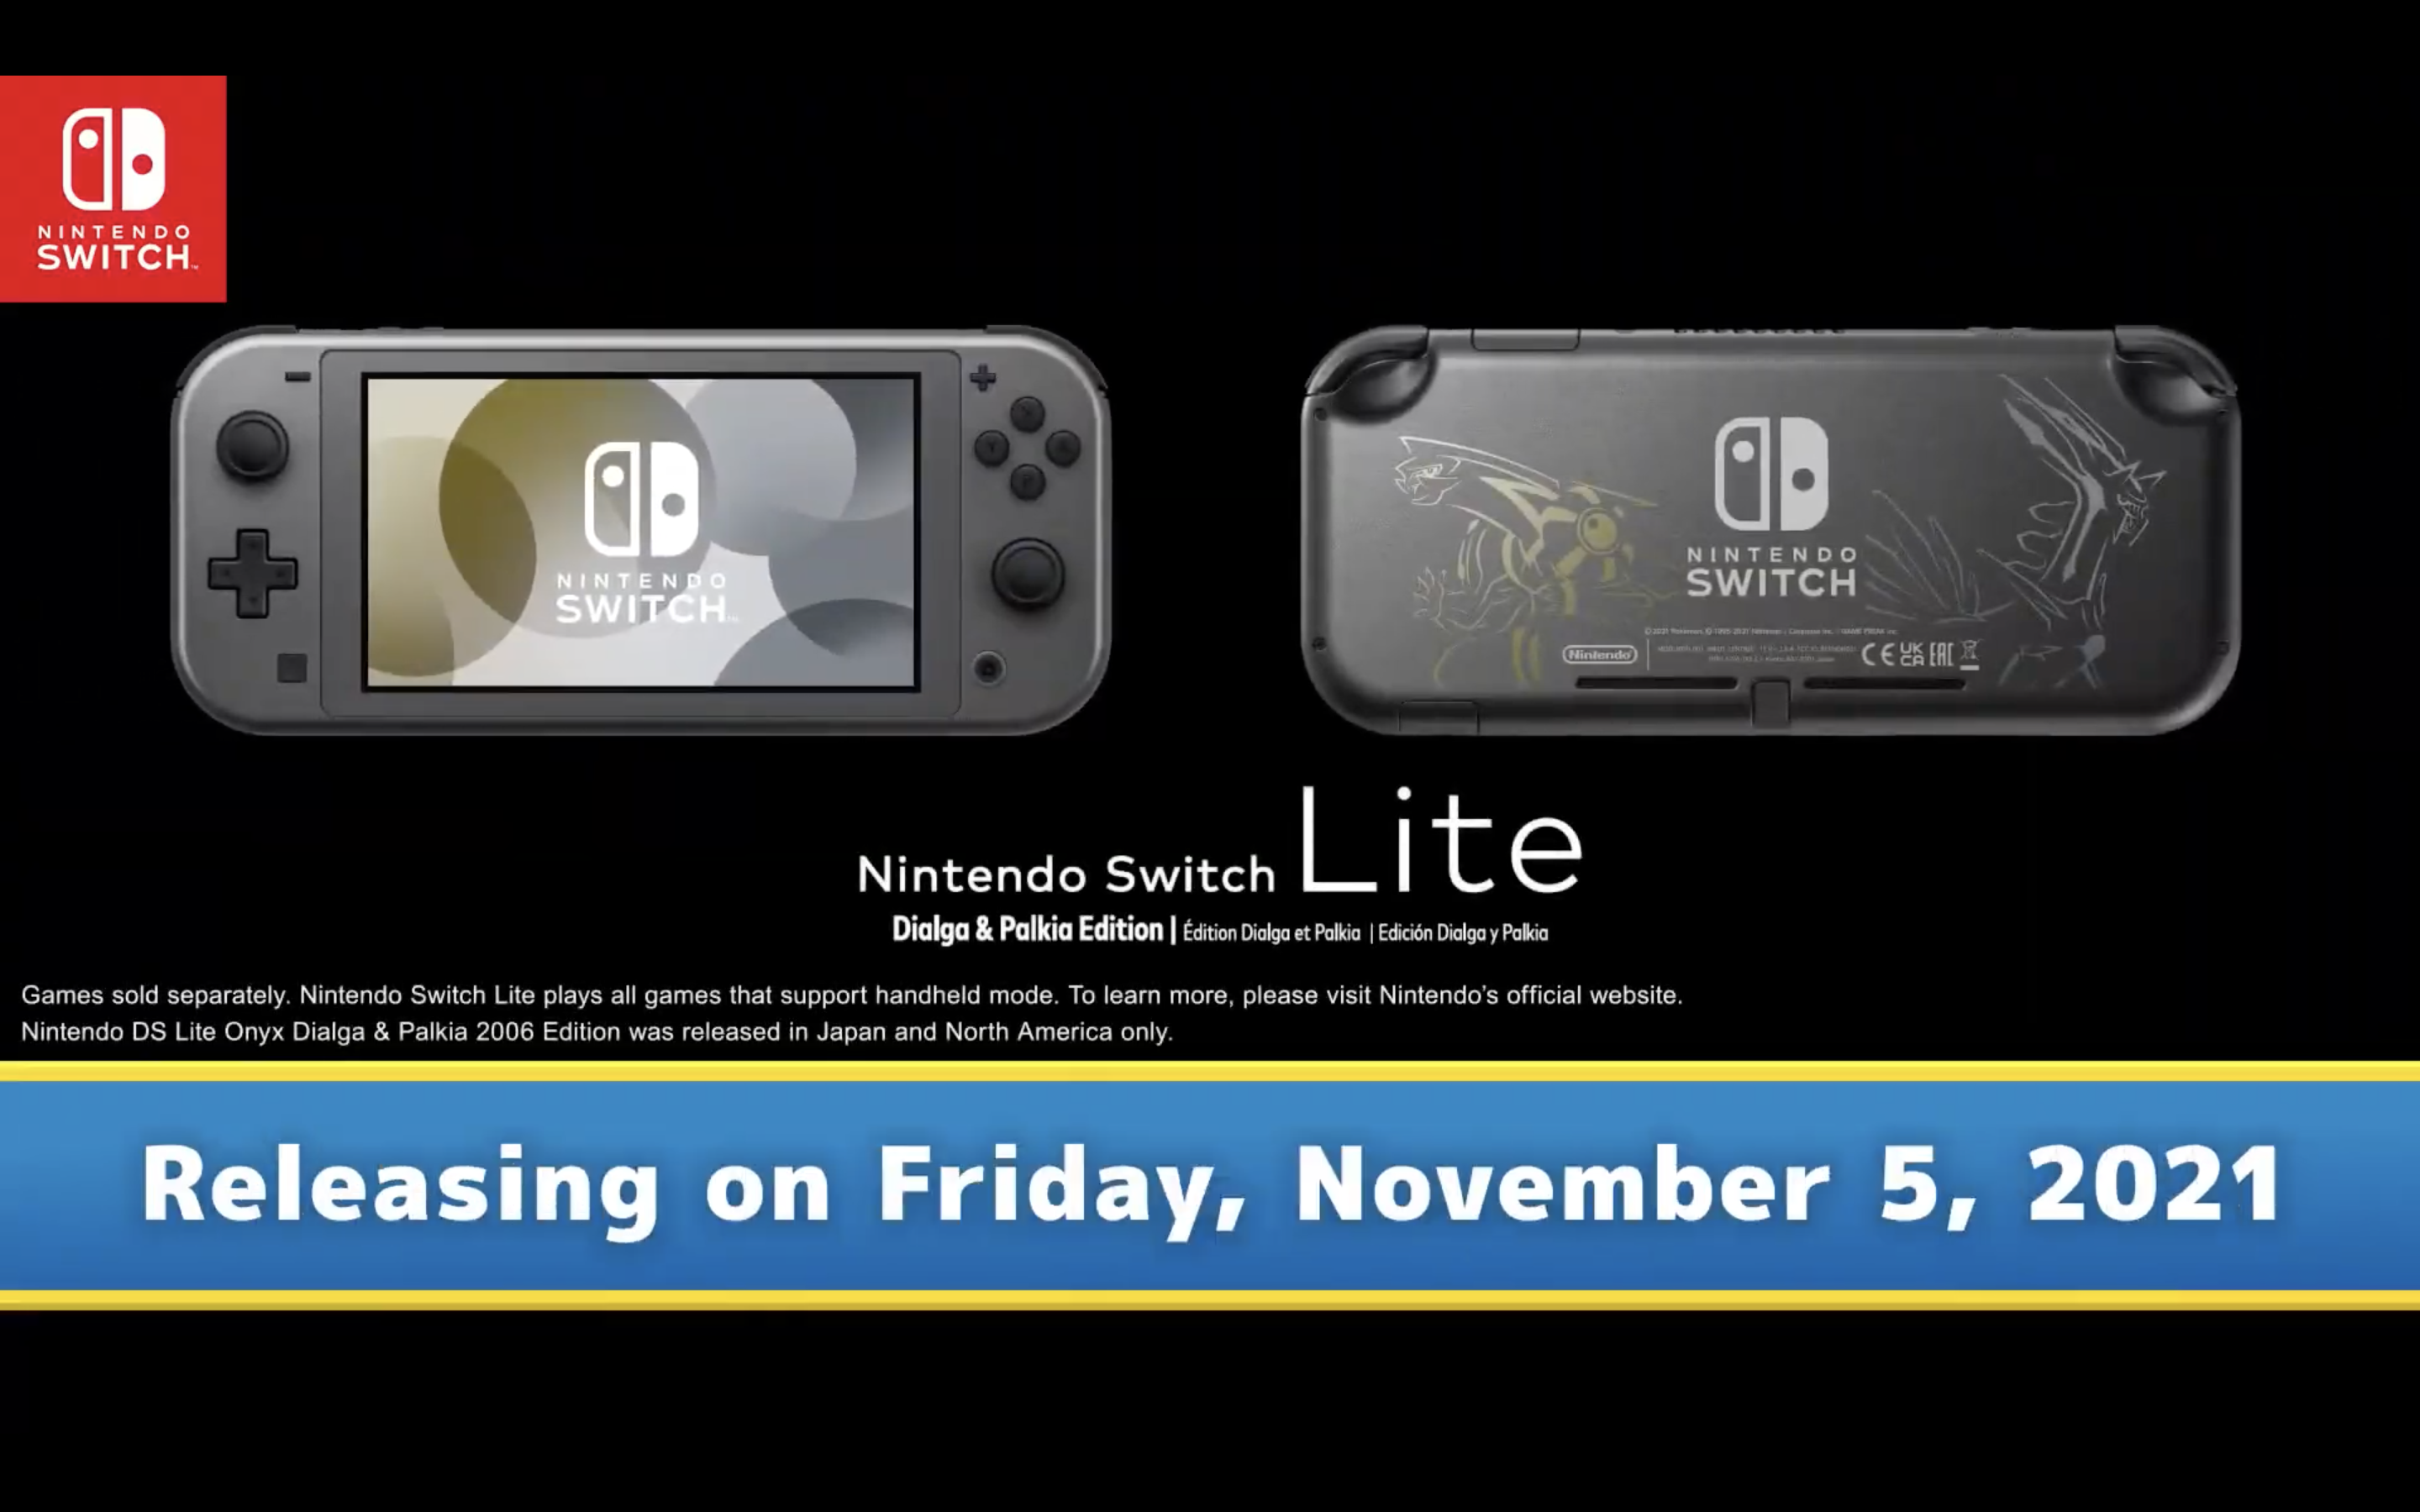 a graphic of a black Nintendo Switch lite with gold and silver decals of the Pokemon Palkia and Dialga on the back